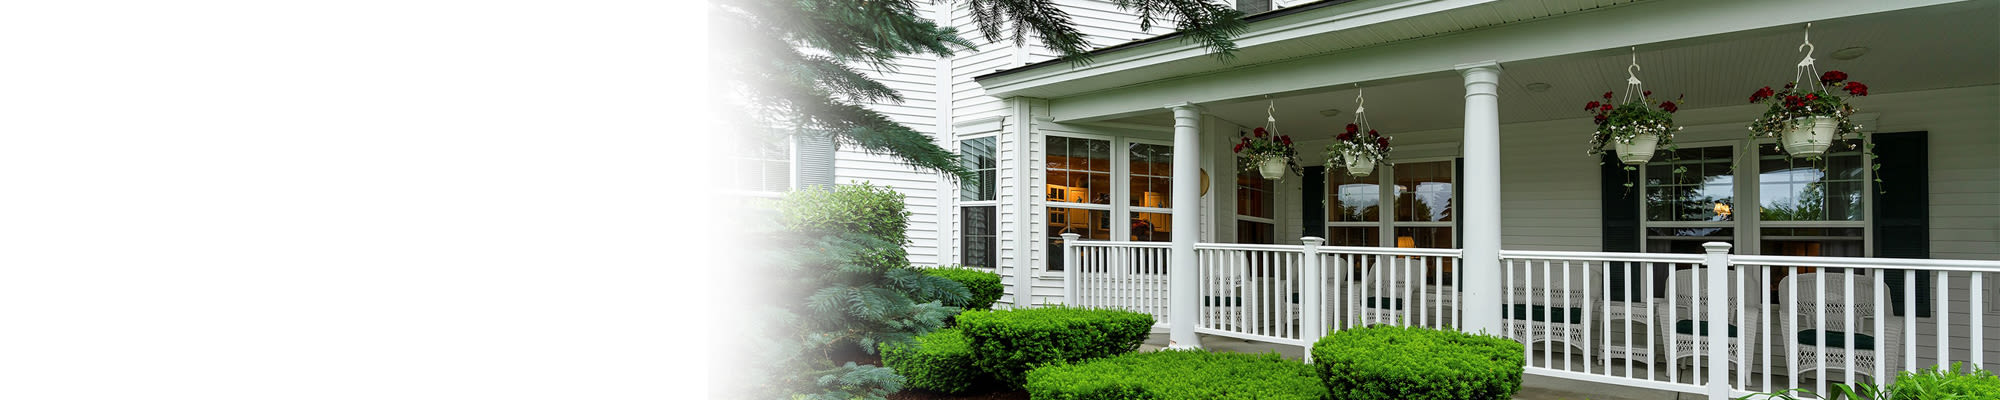 Senior living options at Valley Terrace in White River Junction, Vermont